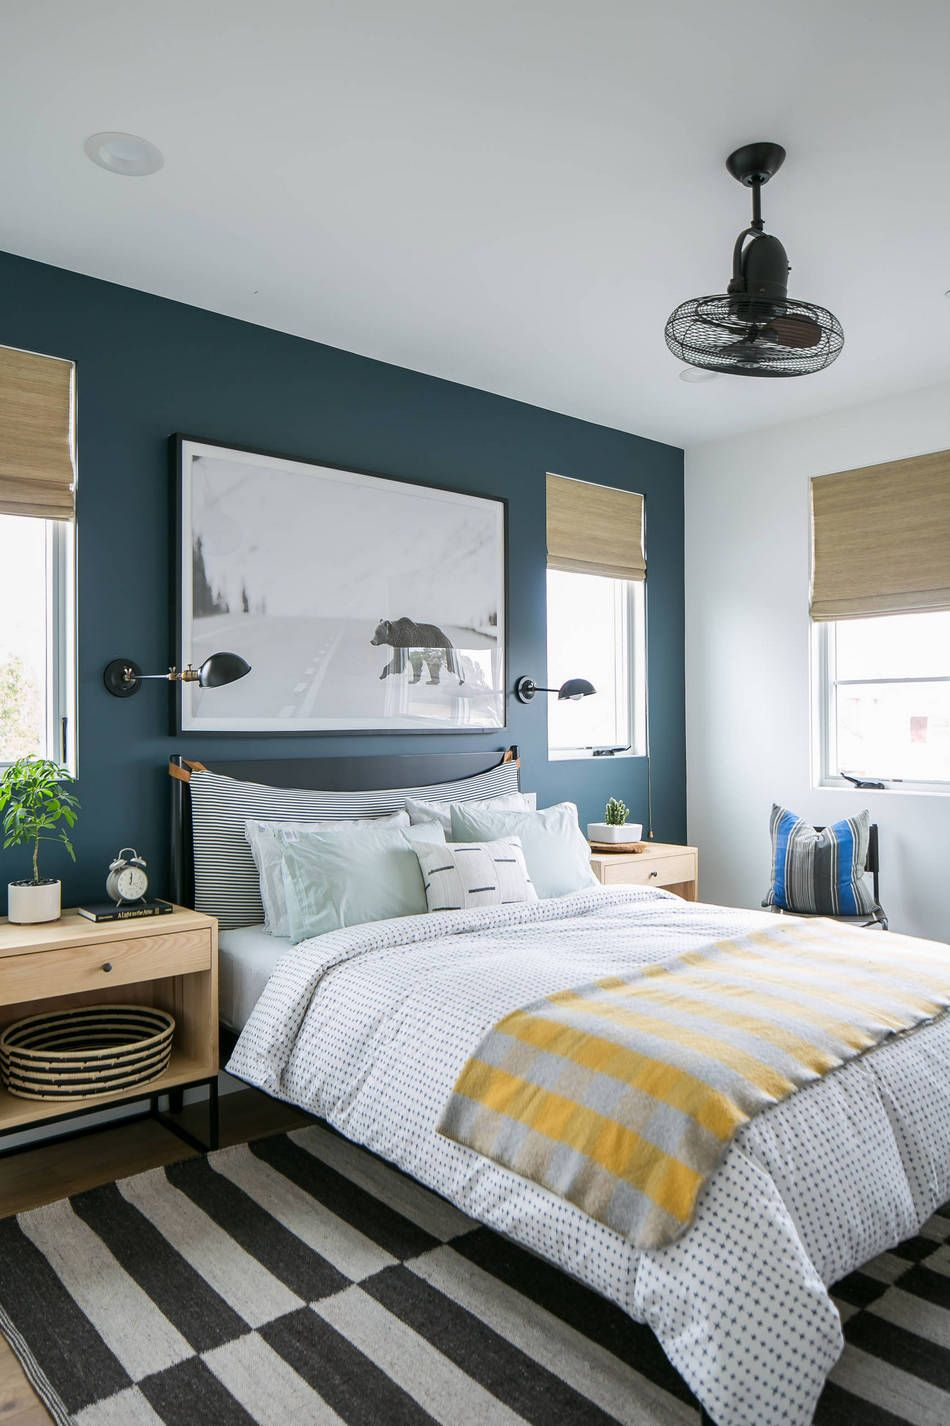 3 Room Hdb Accent Wall: Master Bedroom Interior Design Ideas (With Images